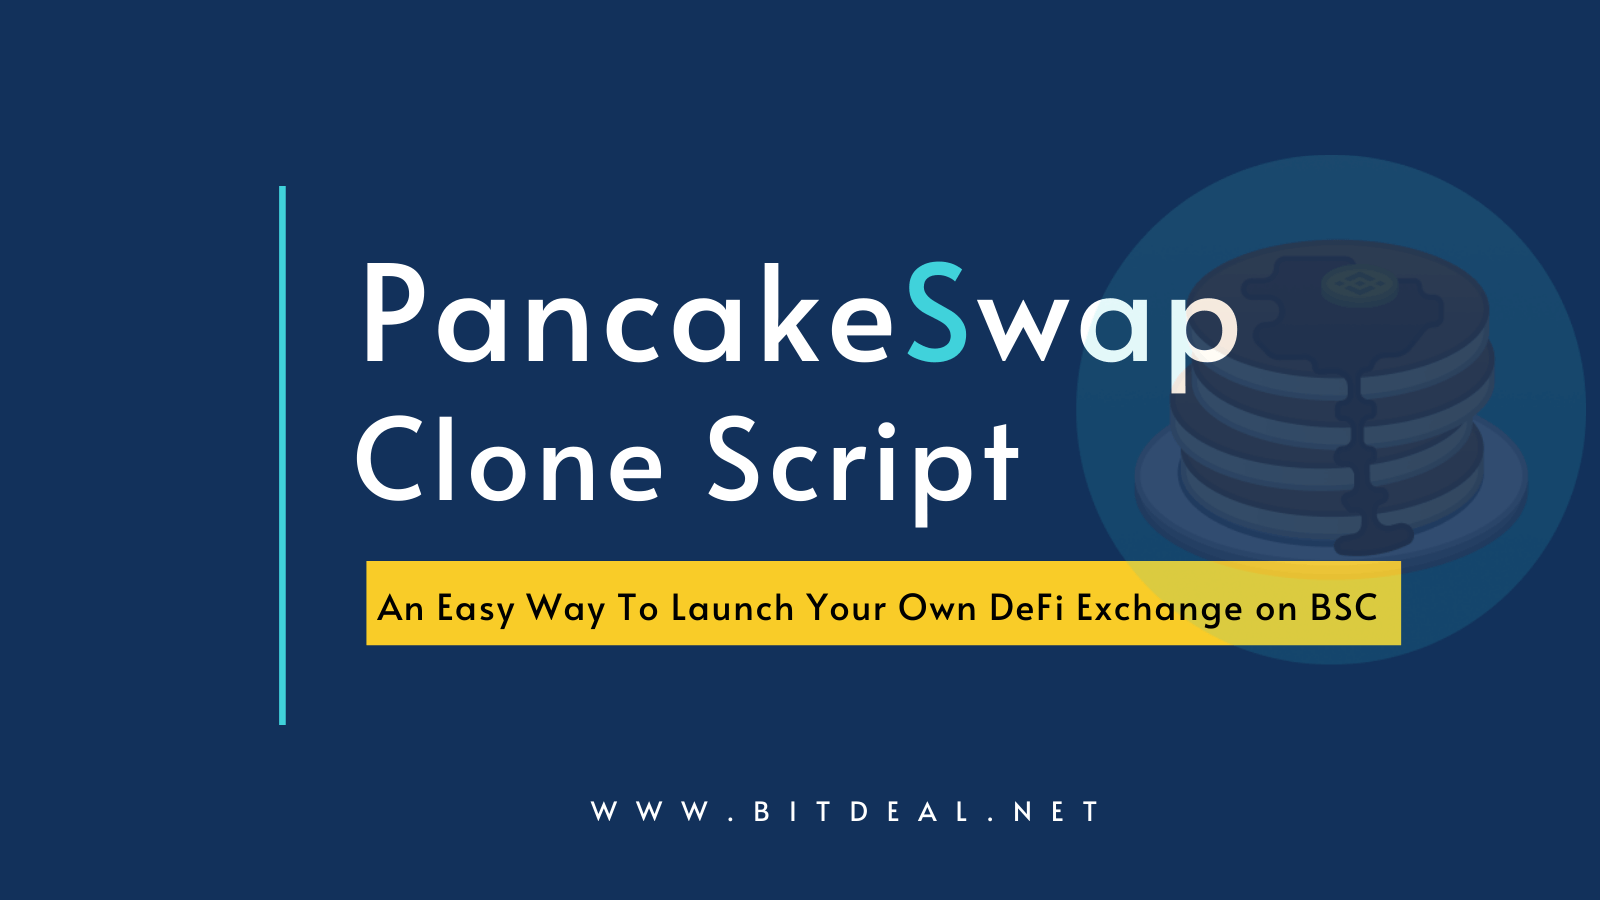 Pancakeswap Clone Script To Launch Your Own DeFi based Exchange